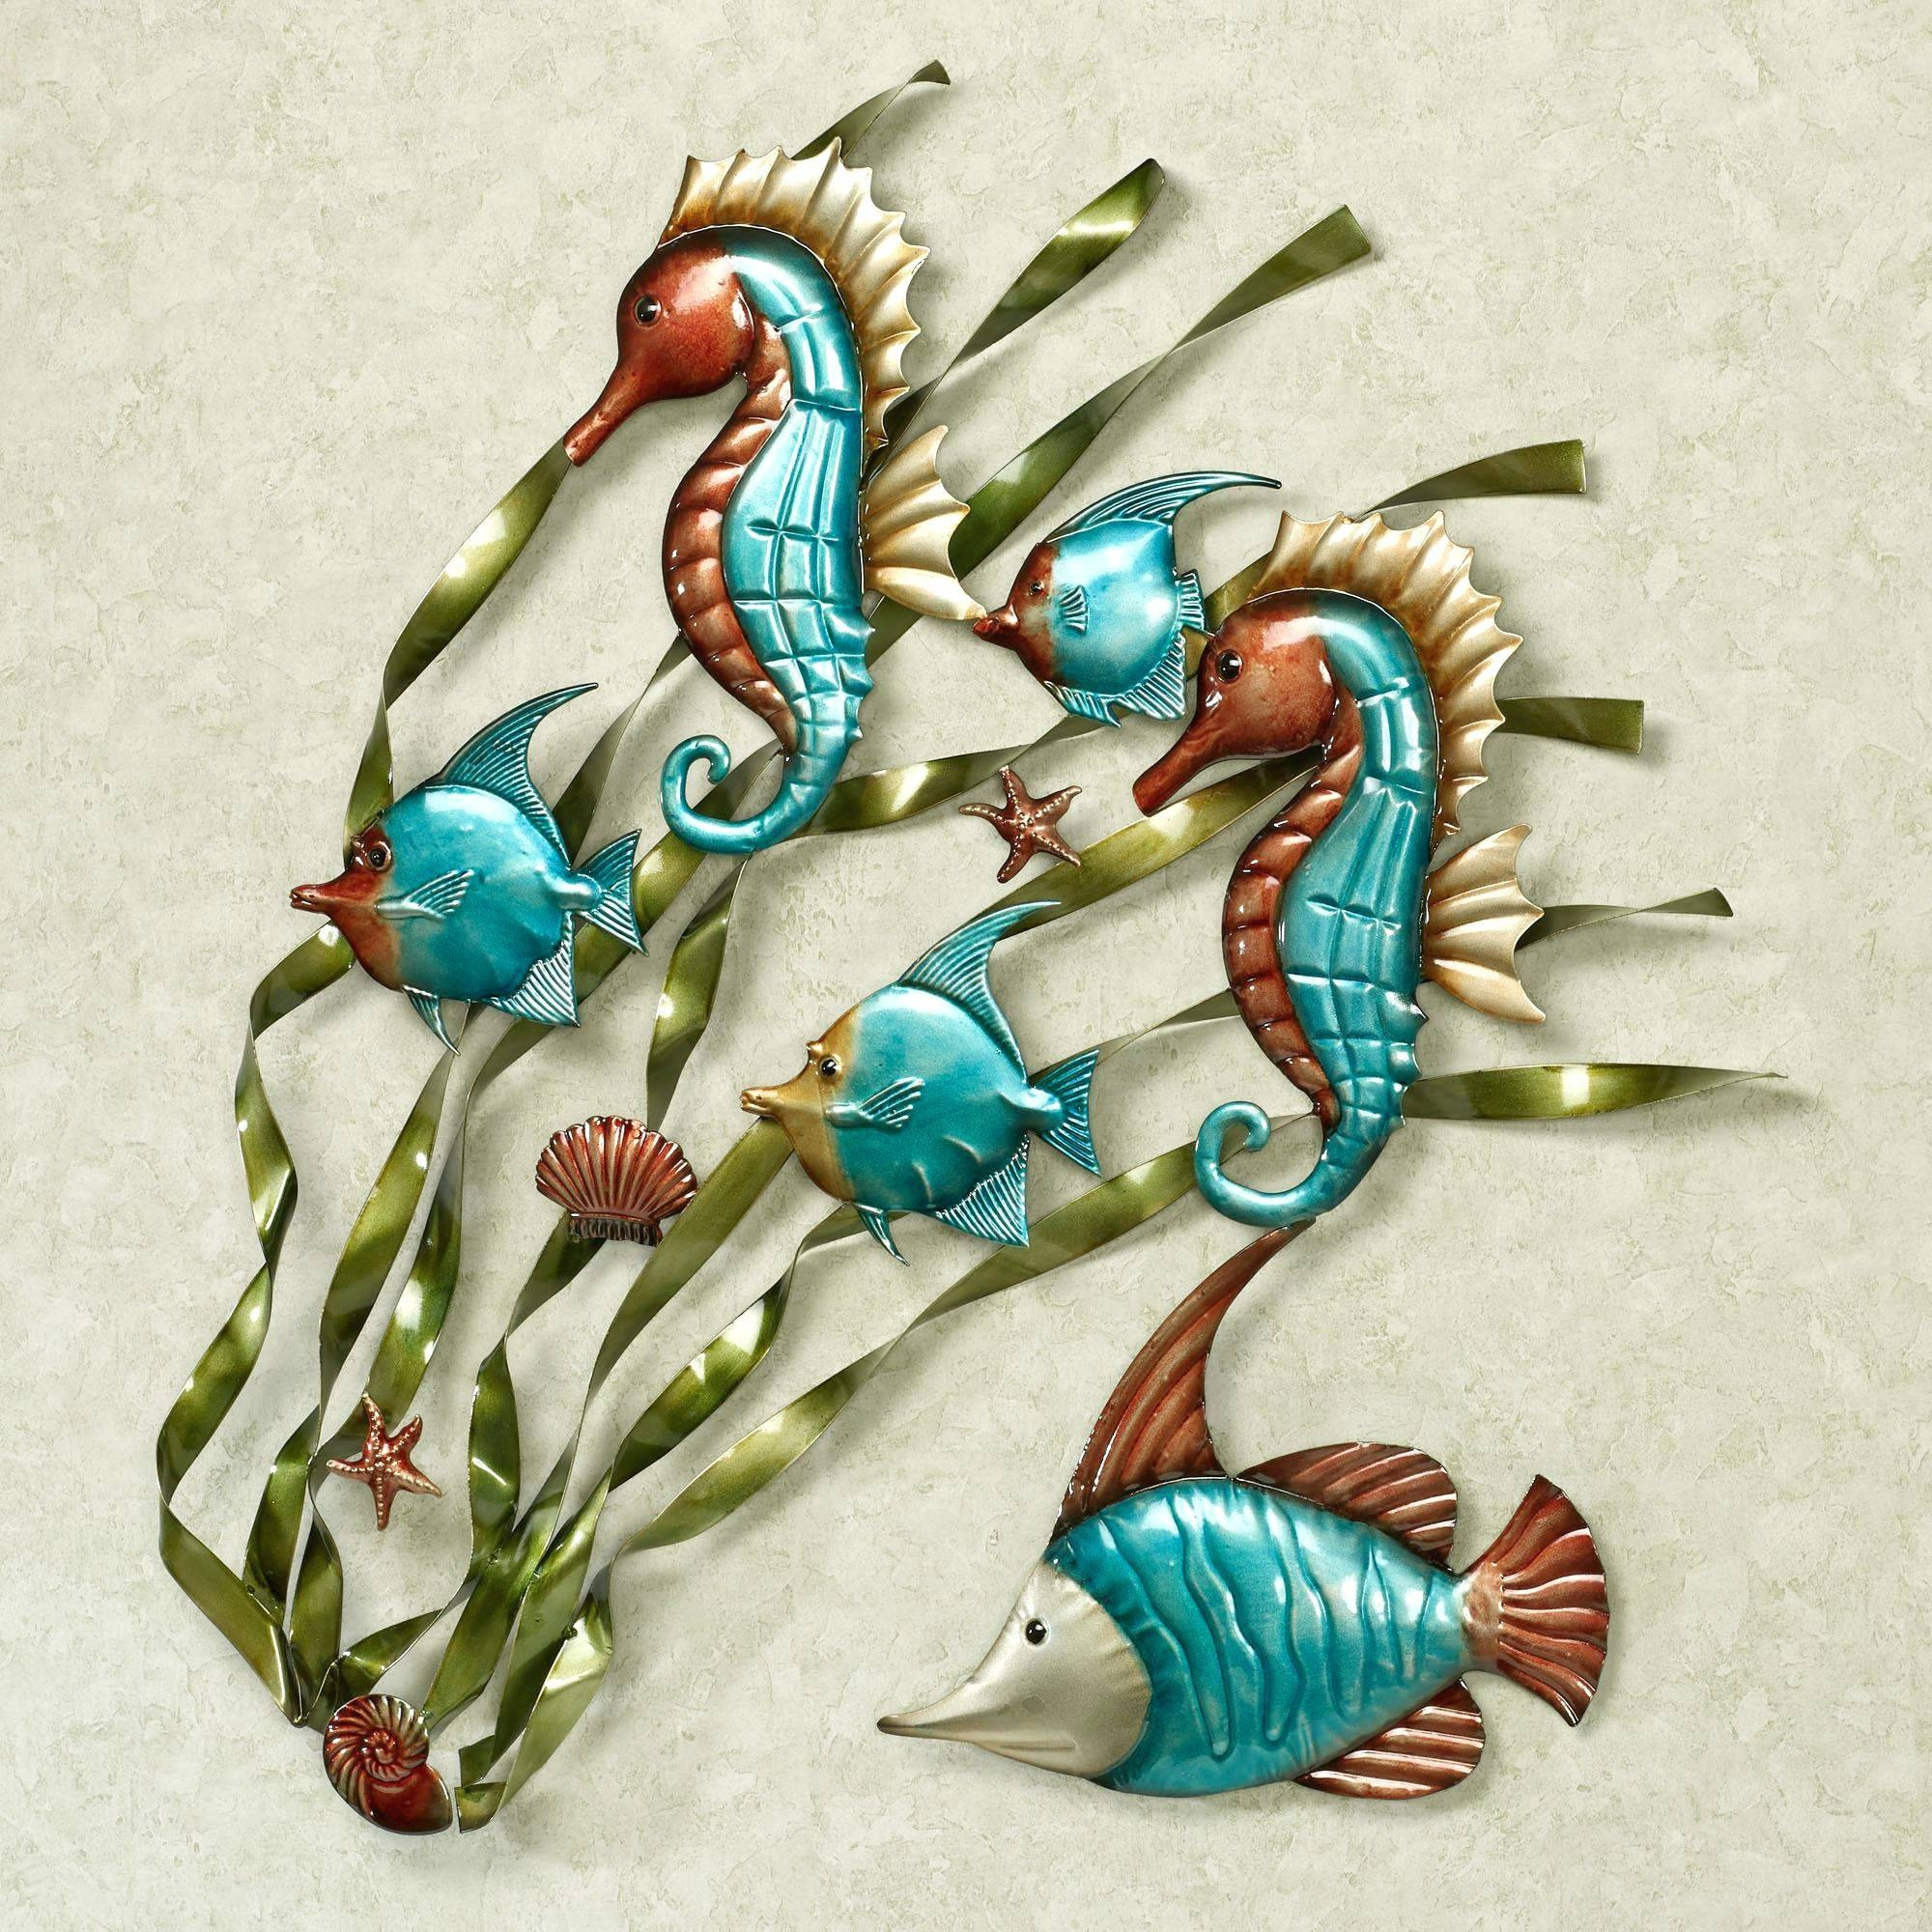 Wall Arts ~ Outdoor Metal Wall Art Fish Metal Fish Wall Art Nz Cod For Most Recent Tropical Fish Metal Wall Art (View 16 of 20)